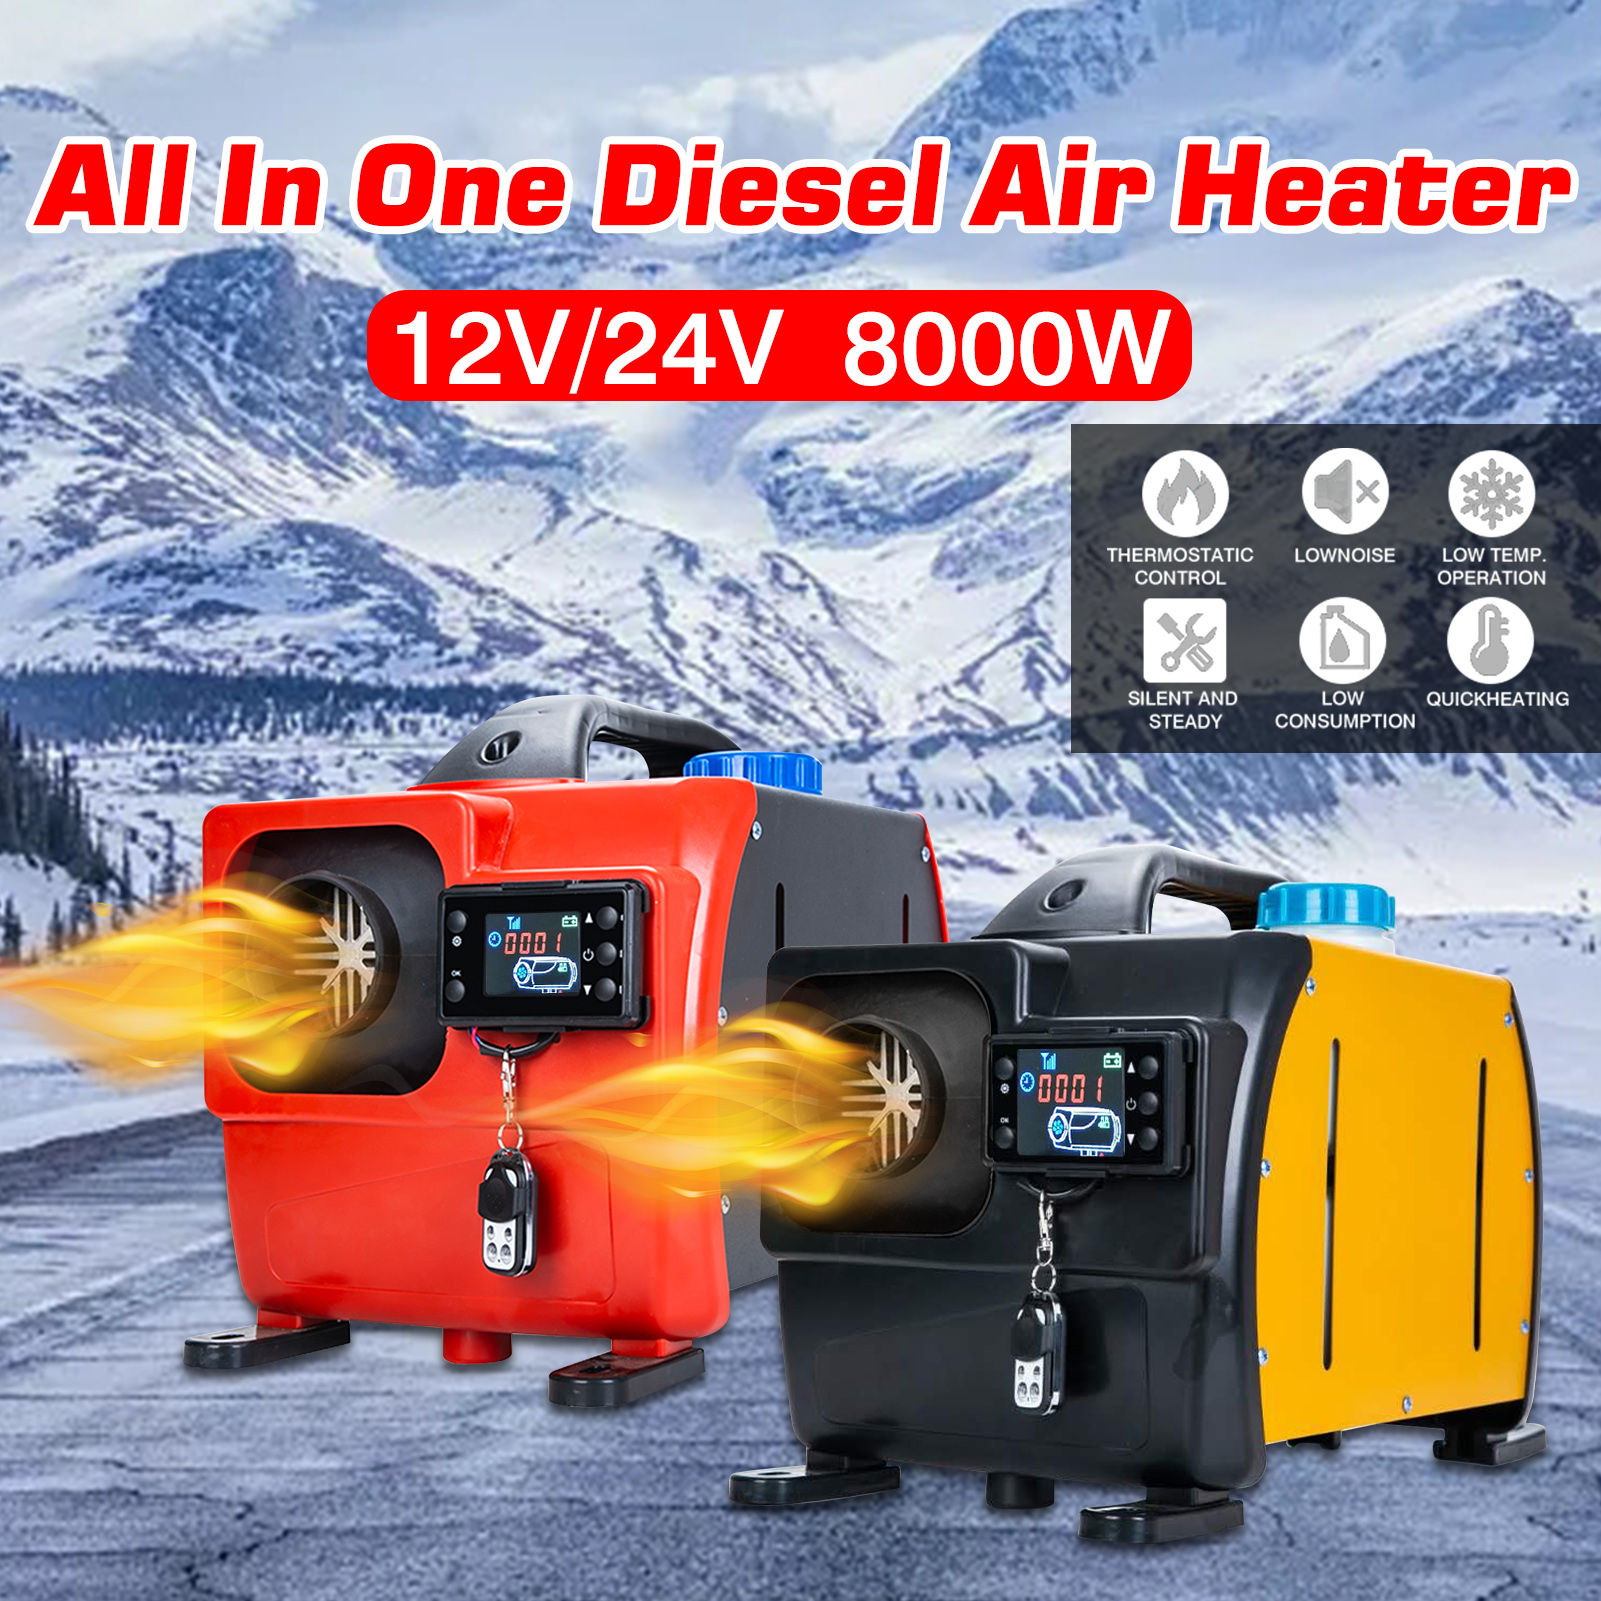 12V 24V ignition copper heater 8kw All in one Car Heater Air Diesel Parking Heater For RVs Motorhome trucks LCD Remote Control|Heating & Fans| - AliExpress